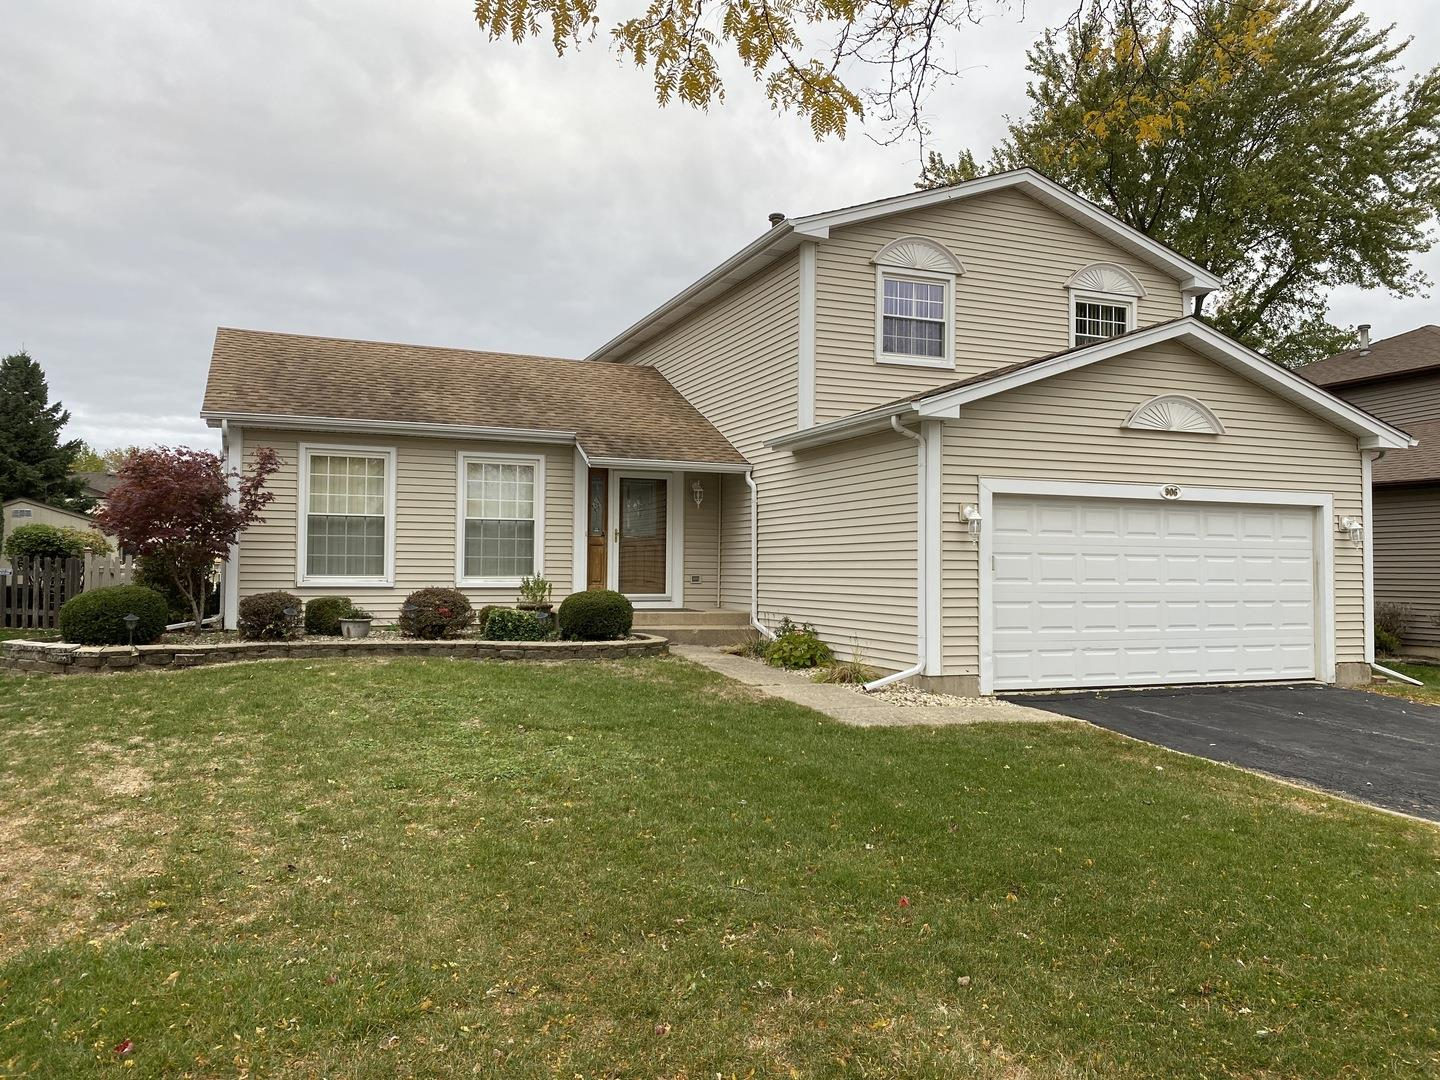 906 Debra Lane, Elk Grove Village, IL 60007 - #: 10917100